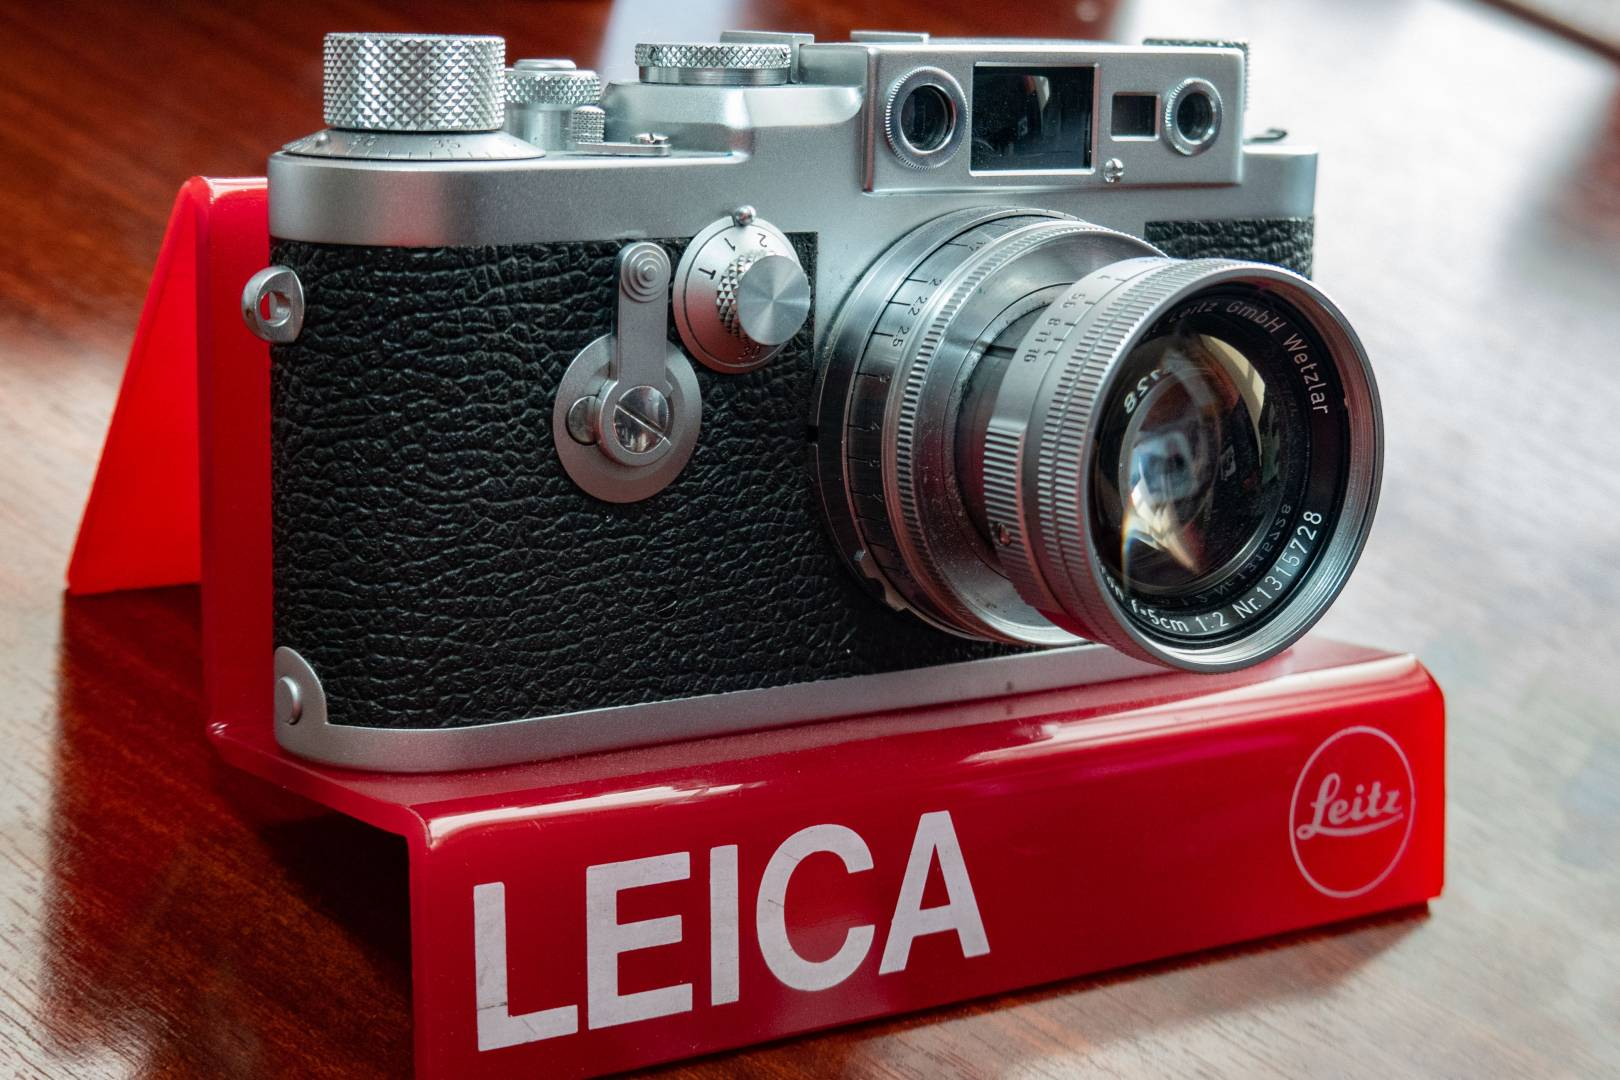 This Leica Leica IIIg made in 1956 fits in the under-£1,000 bracket, although you'll need some glass. Mounted on the caemra is a 1955 5cm Summicron. The IIIg was the best and last screw-thread Leica which sold alongside the rangefinder M3 until 1960. Some photographers couldn't be weaned off them.